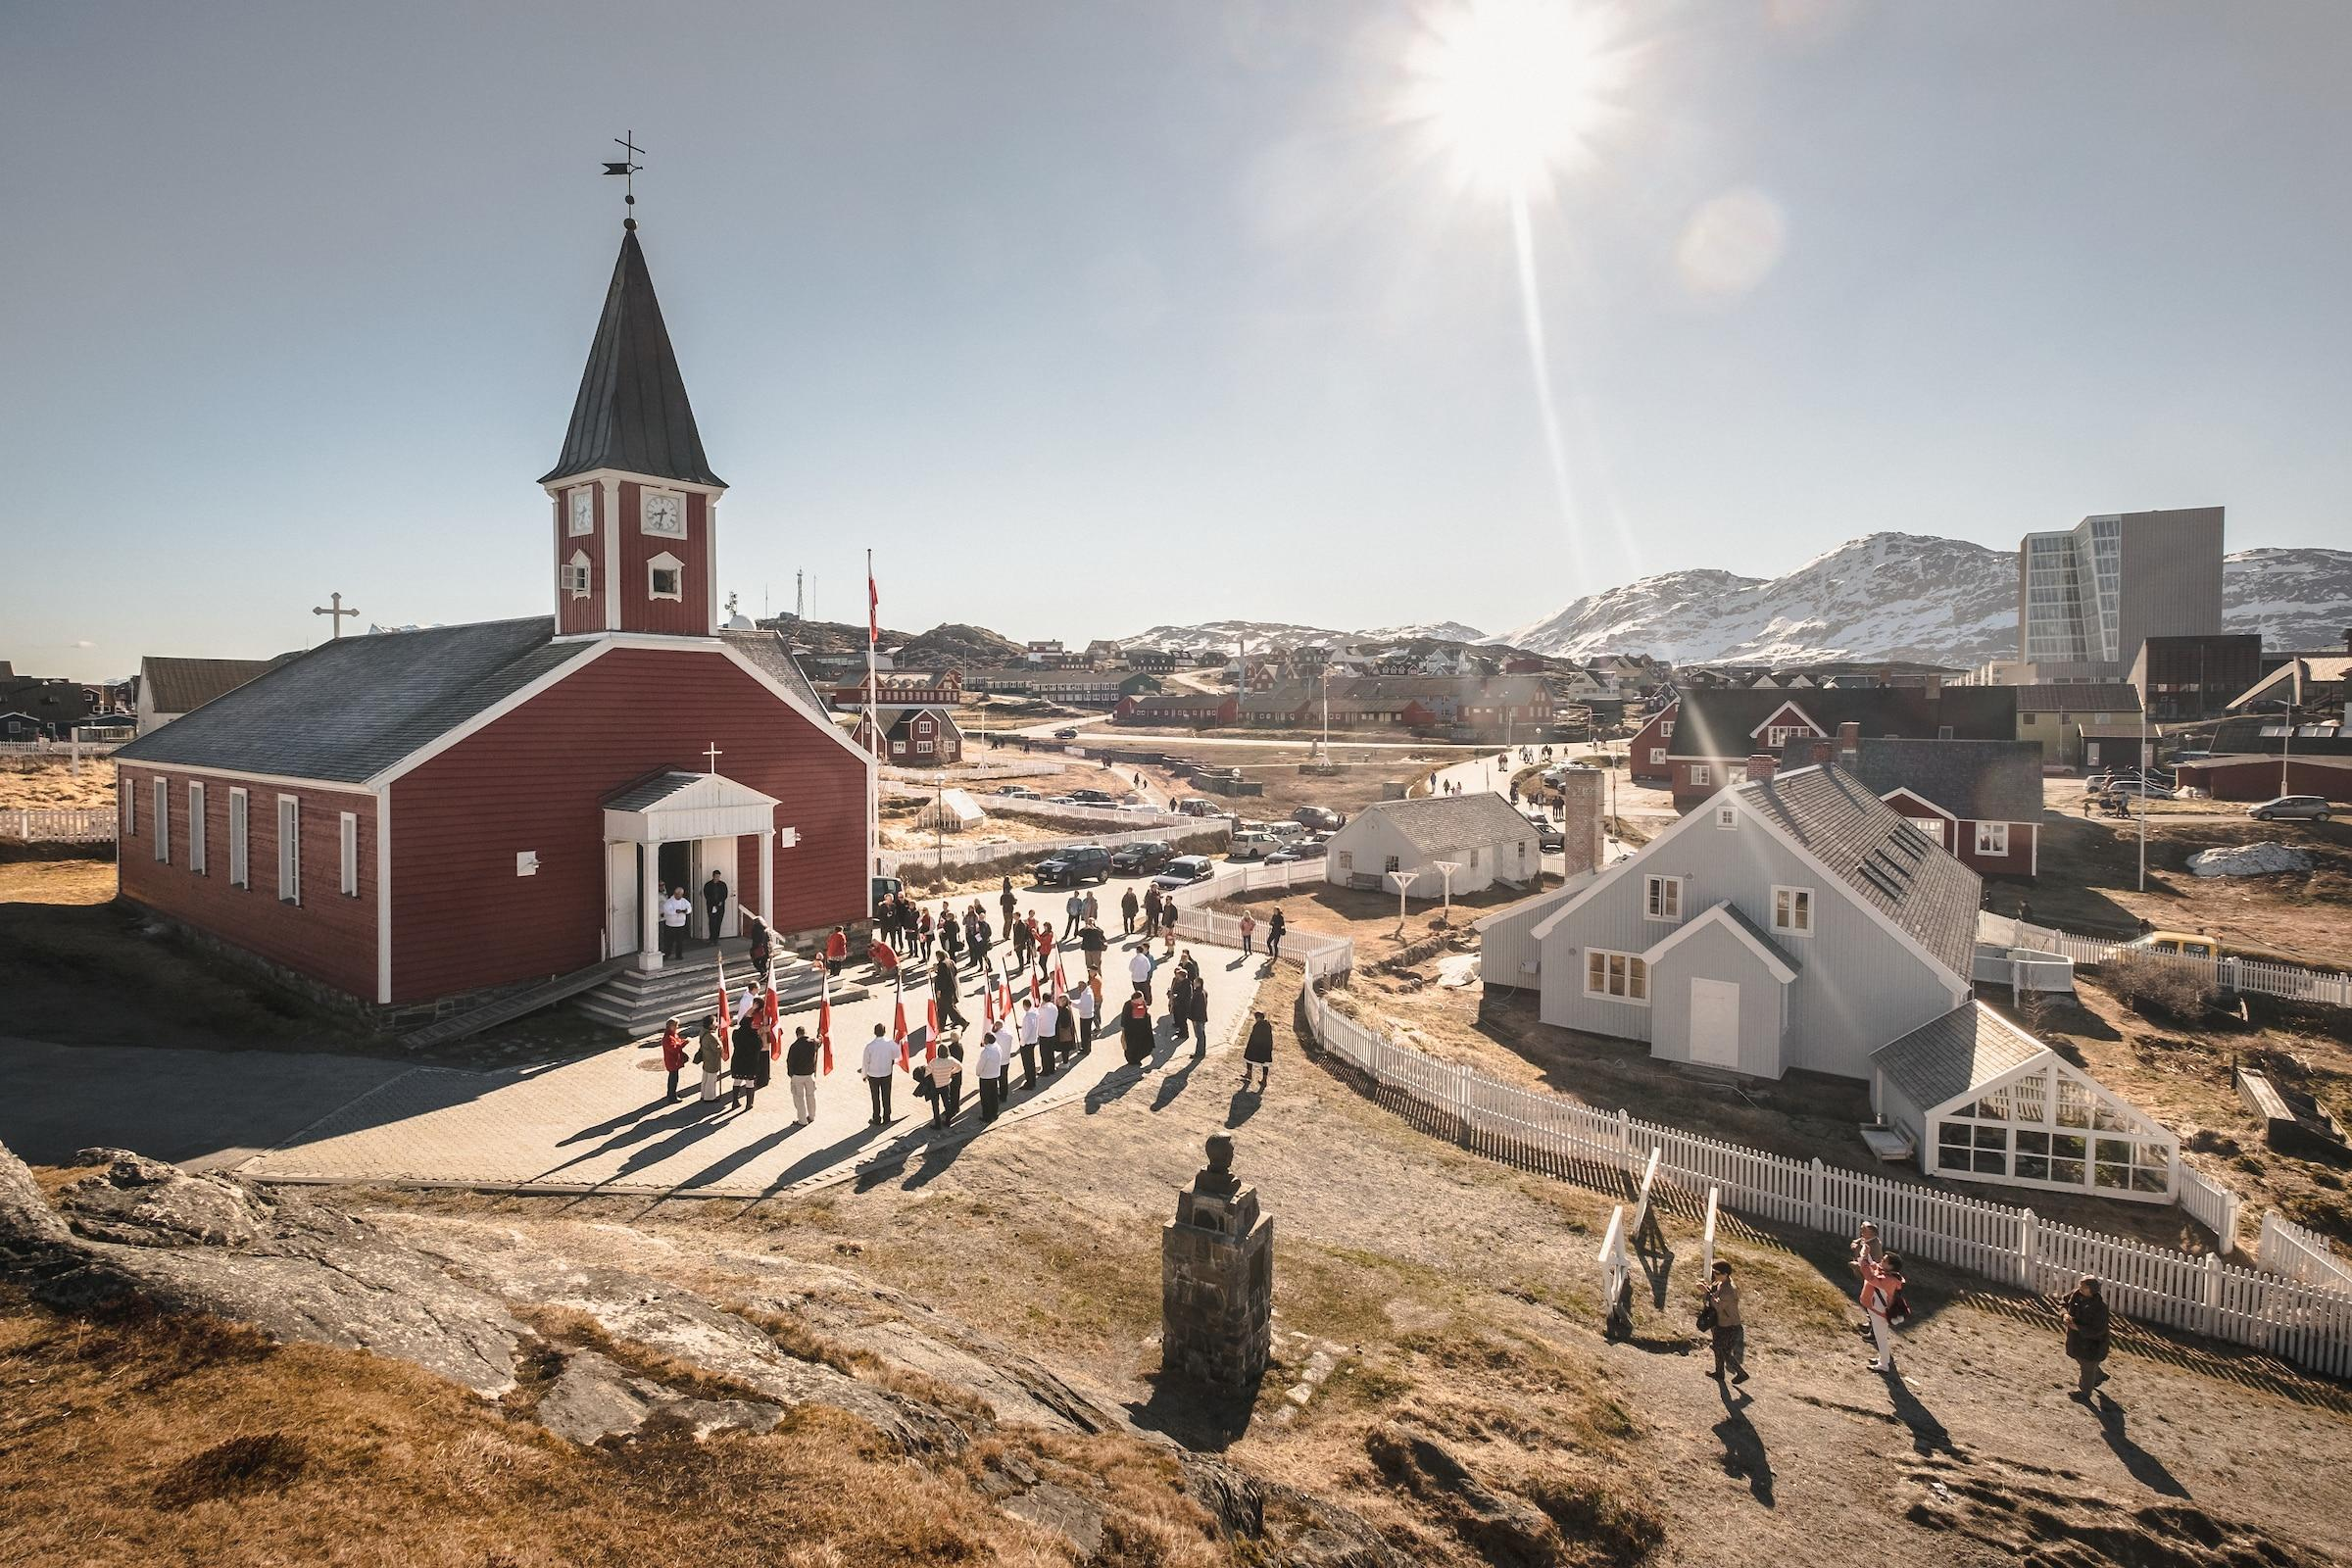 The old church in Nuuk on a sunny National Day in Greenland, June 21 - 2015. By Mads Pihl.